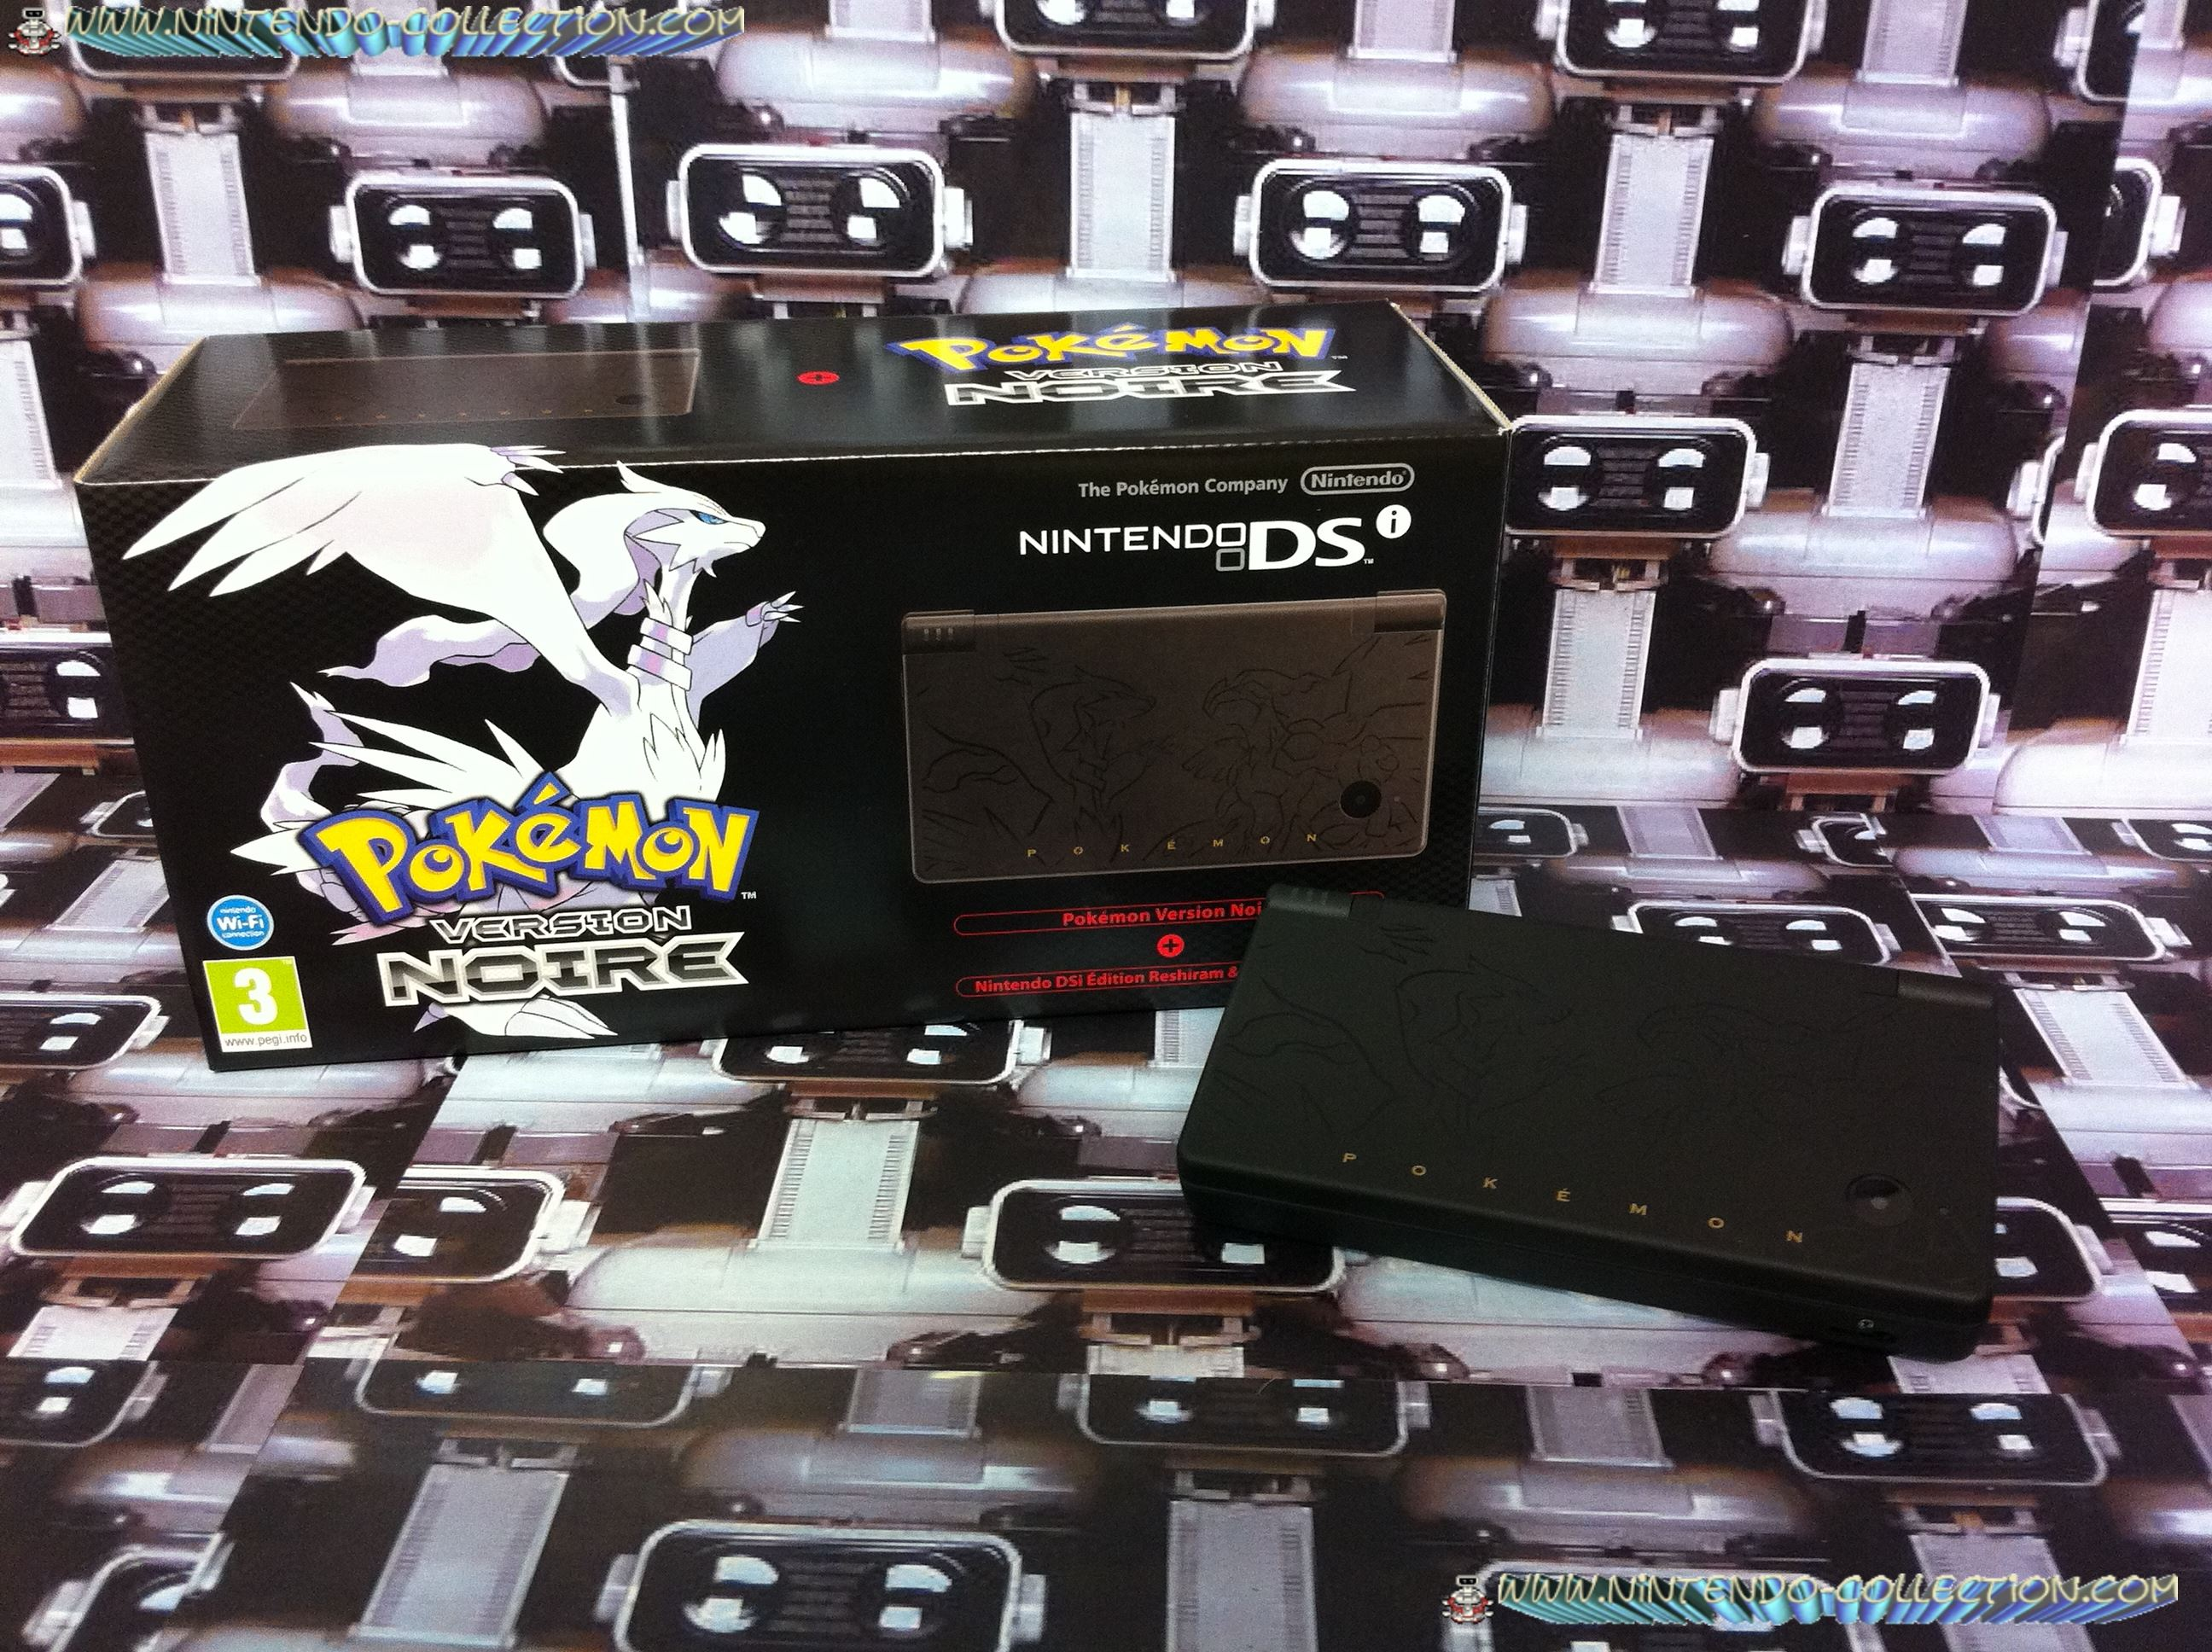 www.nintendo-collection.com - Nintendo DSi version Reshiram Zekrom Pokemon black noir